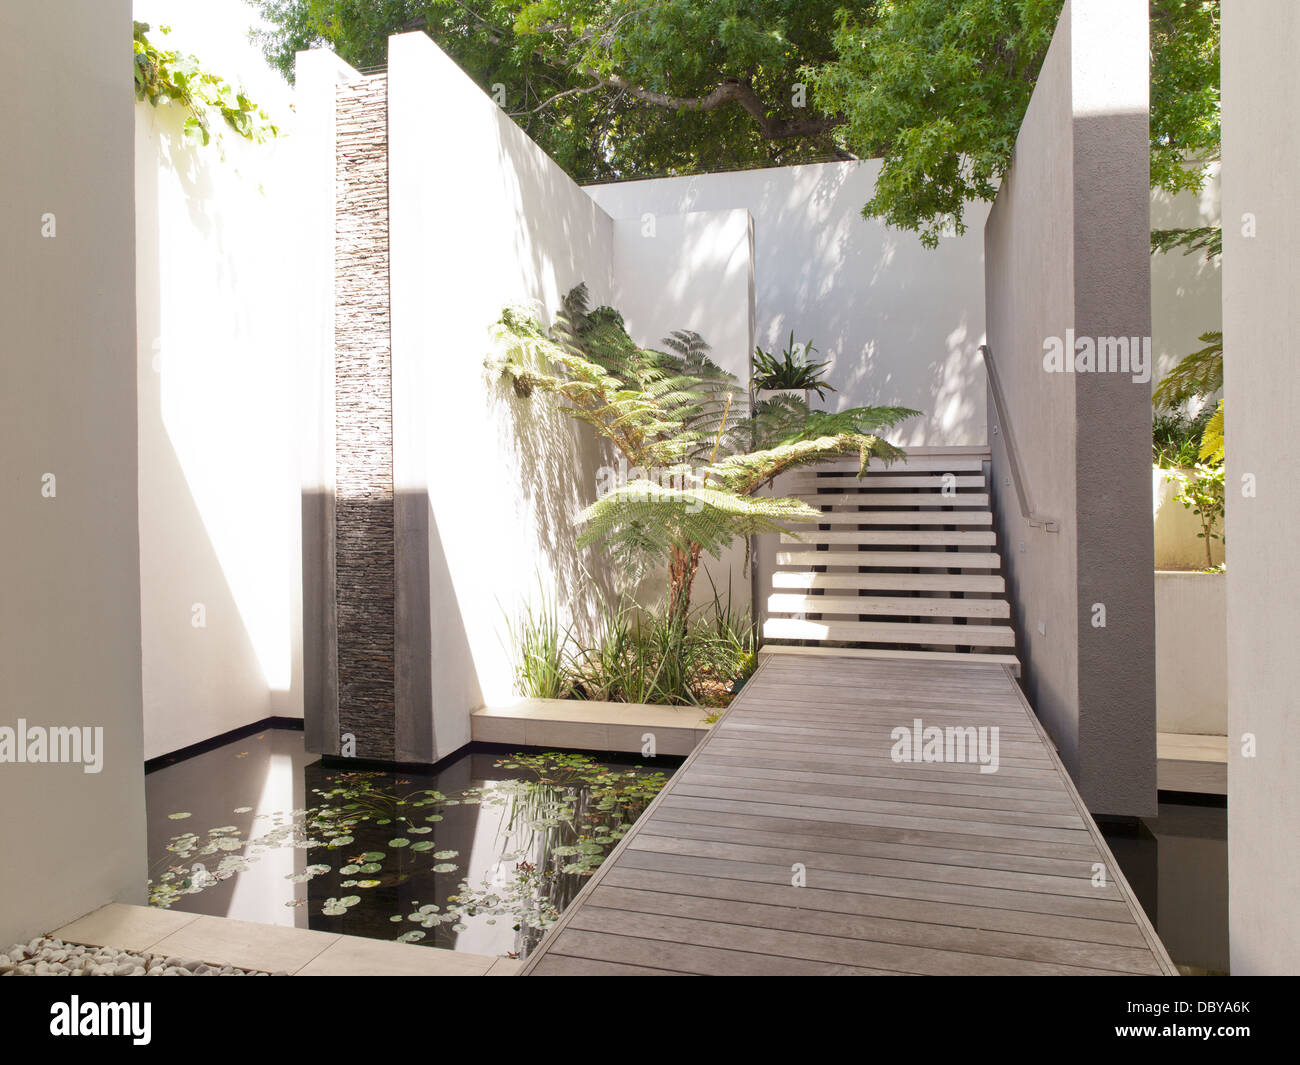 Pond in courtyard of modern house - Stock Image